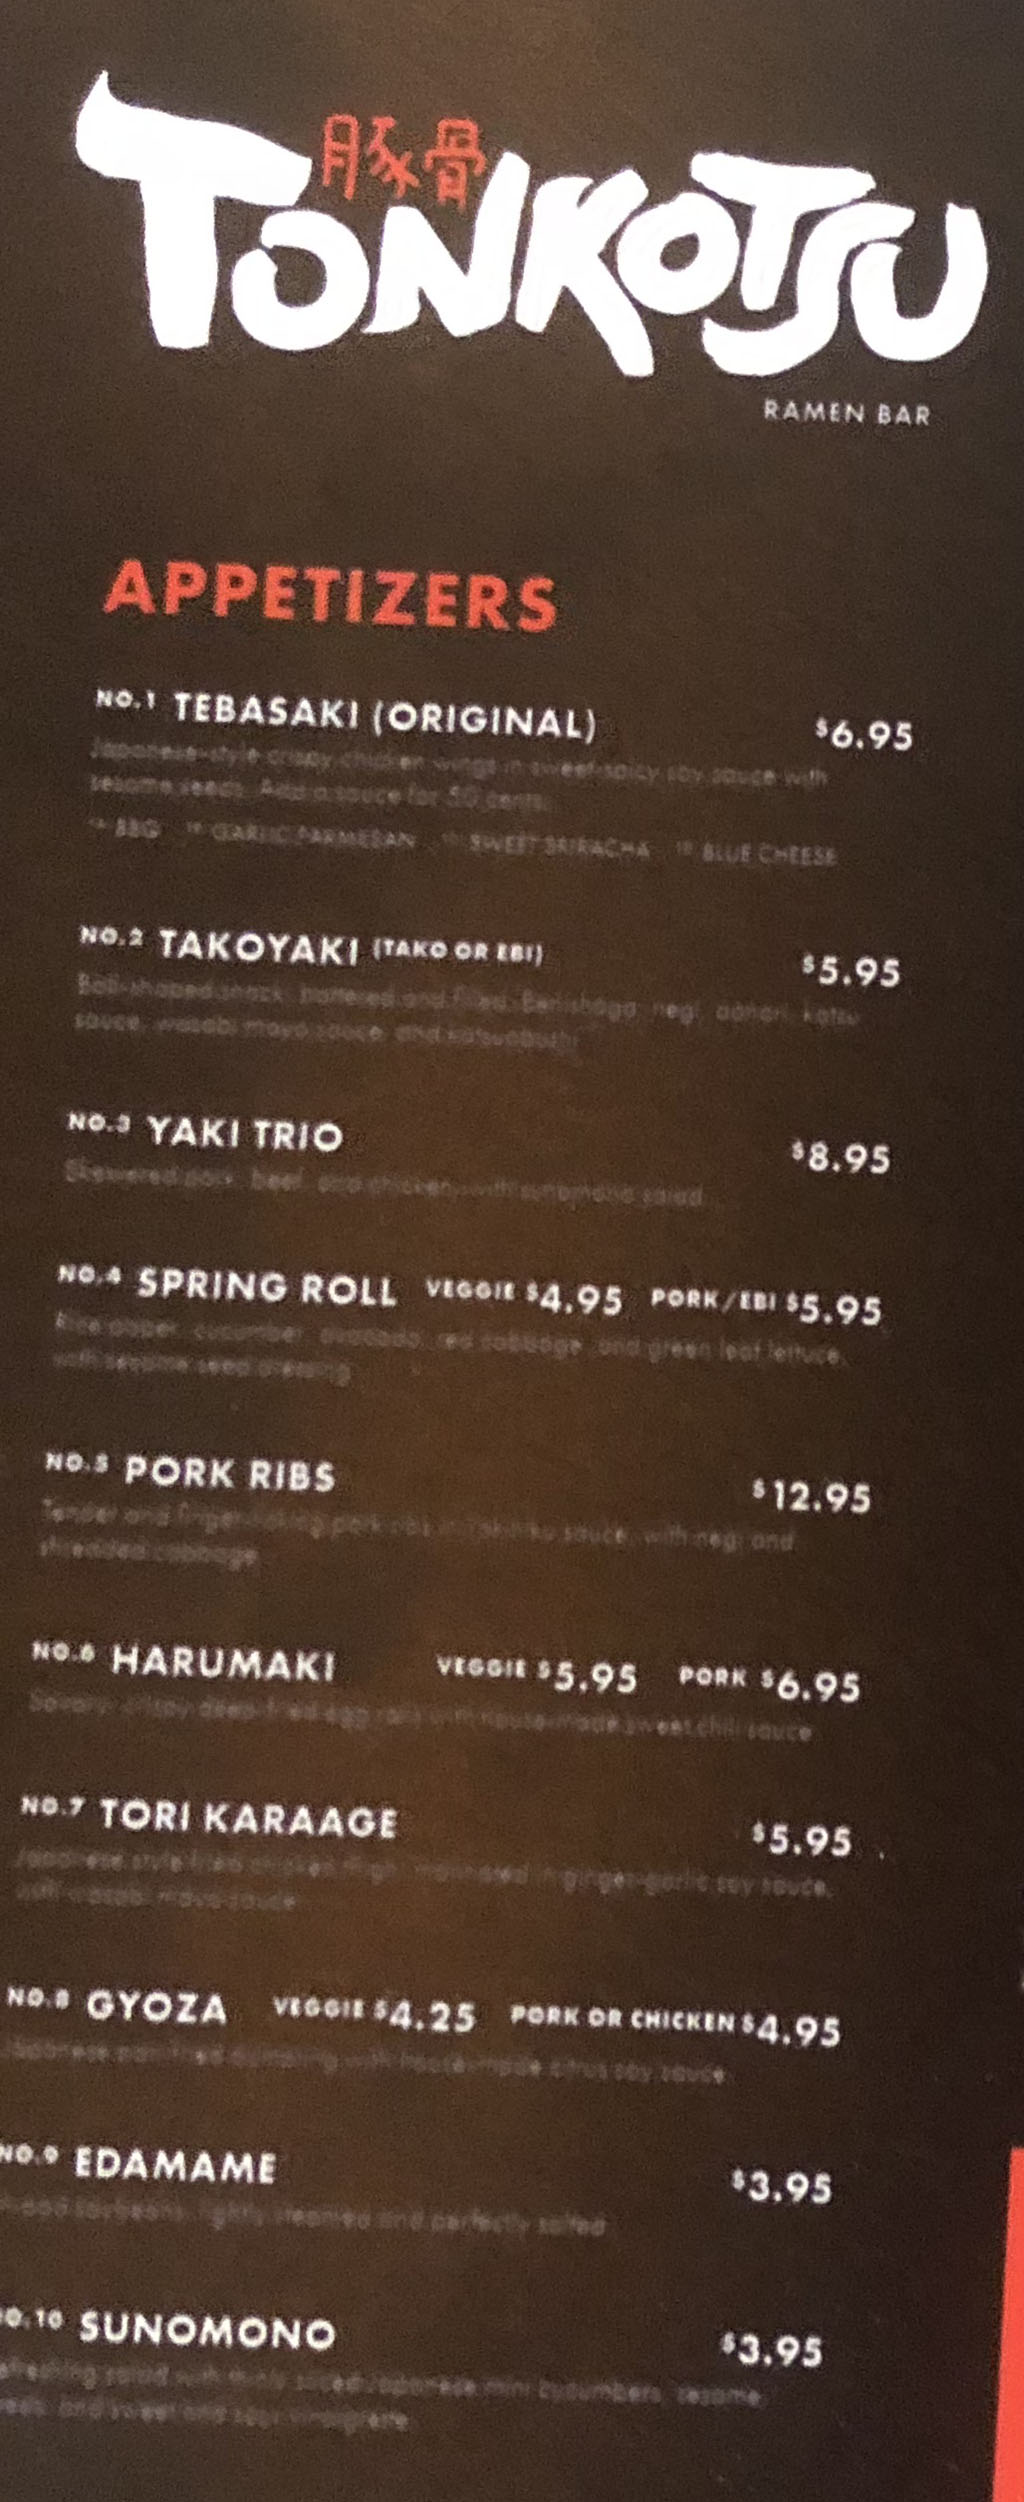 Tonkotsu Ramen Bar menu - appetizers